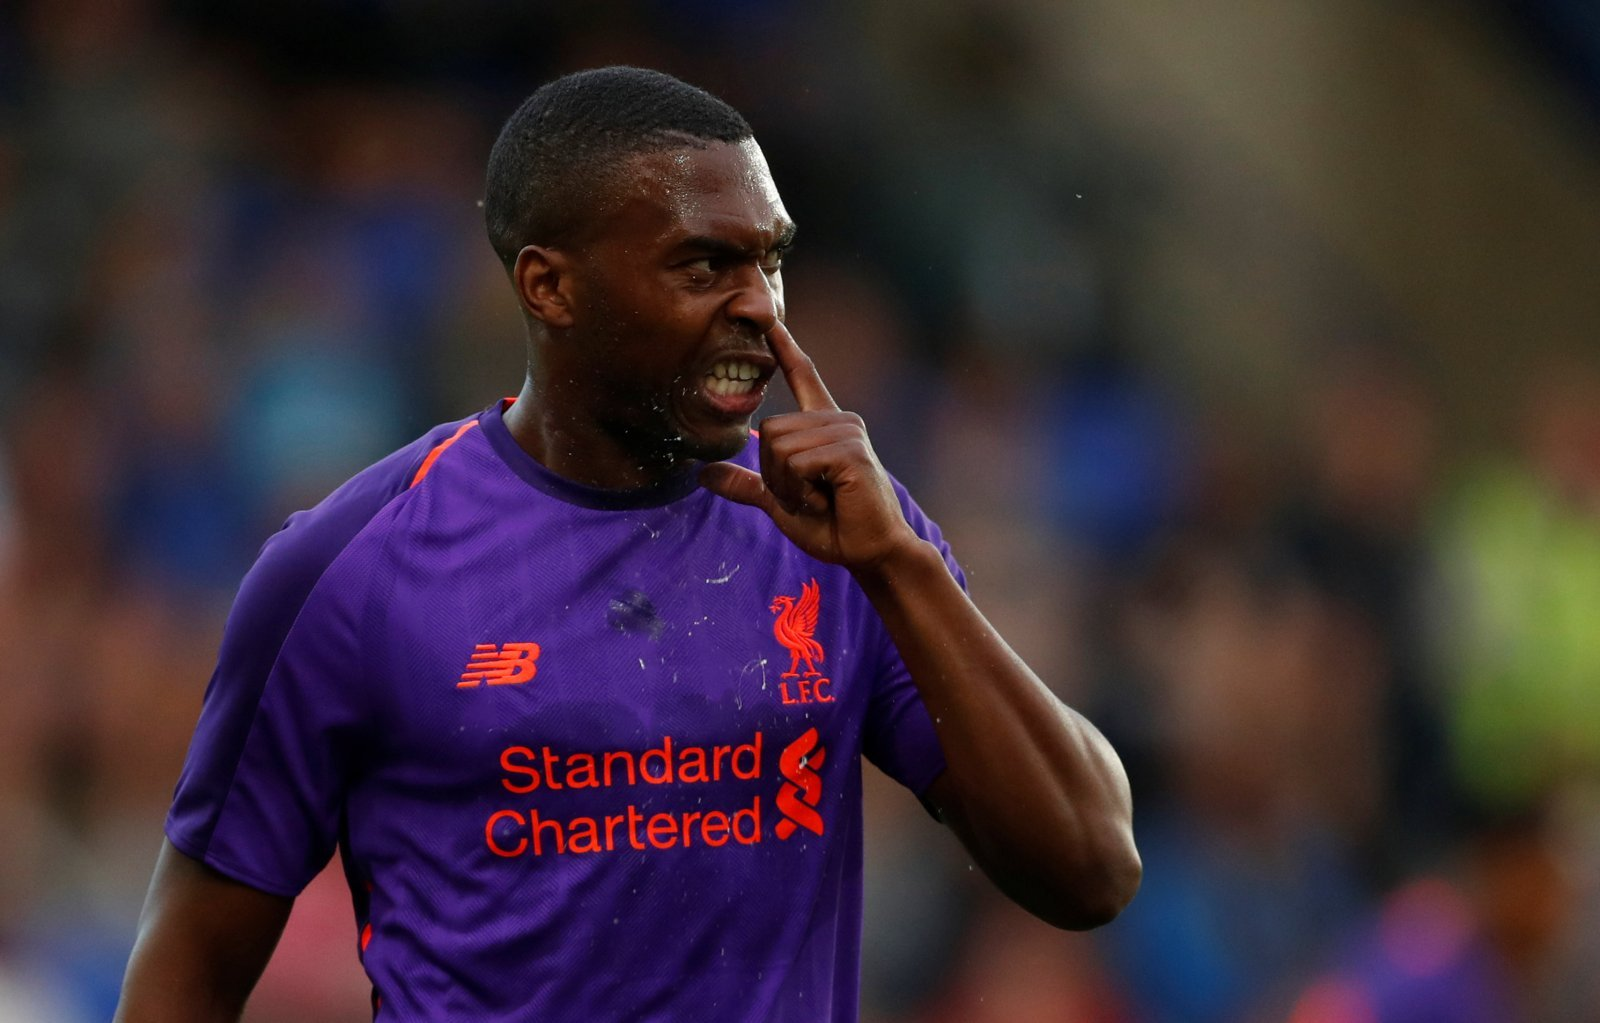 Daniel Sturridge doesn't deserve to play for Liverpool anymore